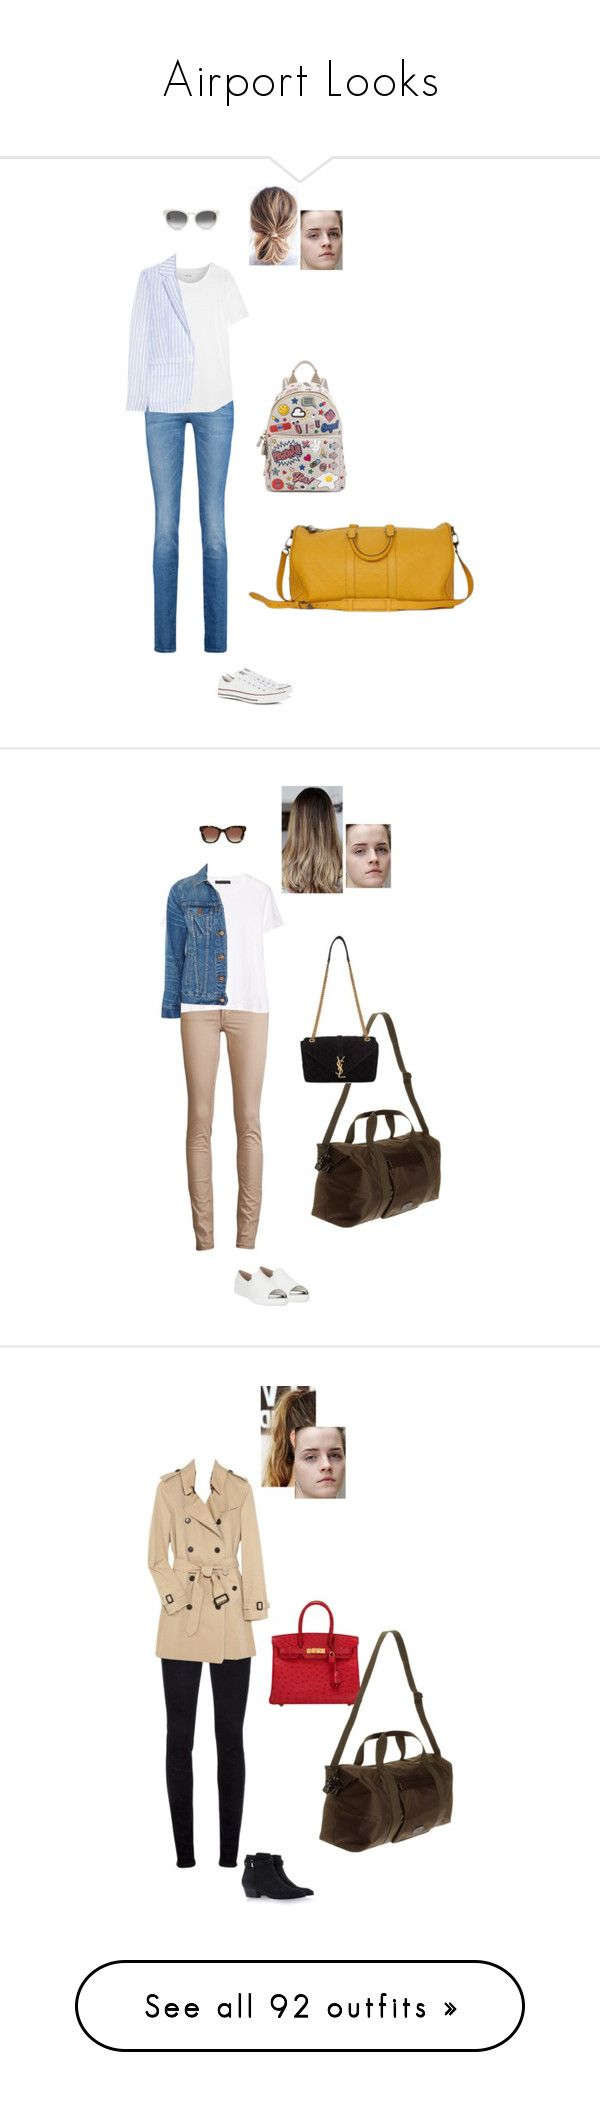 """Airport Looks"" by gracebeckett on Polyvore featuring moda, 7 For All Mankind, Converse, Madewell, Band of Outsiders, Louis Vuitton, TOMS, Anya Hindmarch, Acne Studios e Miu Miu"